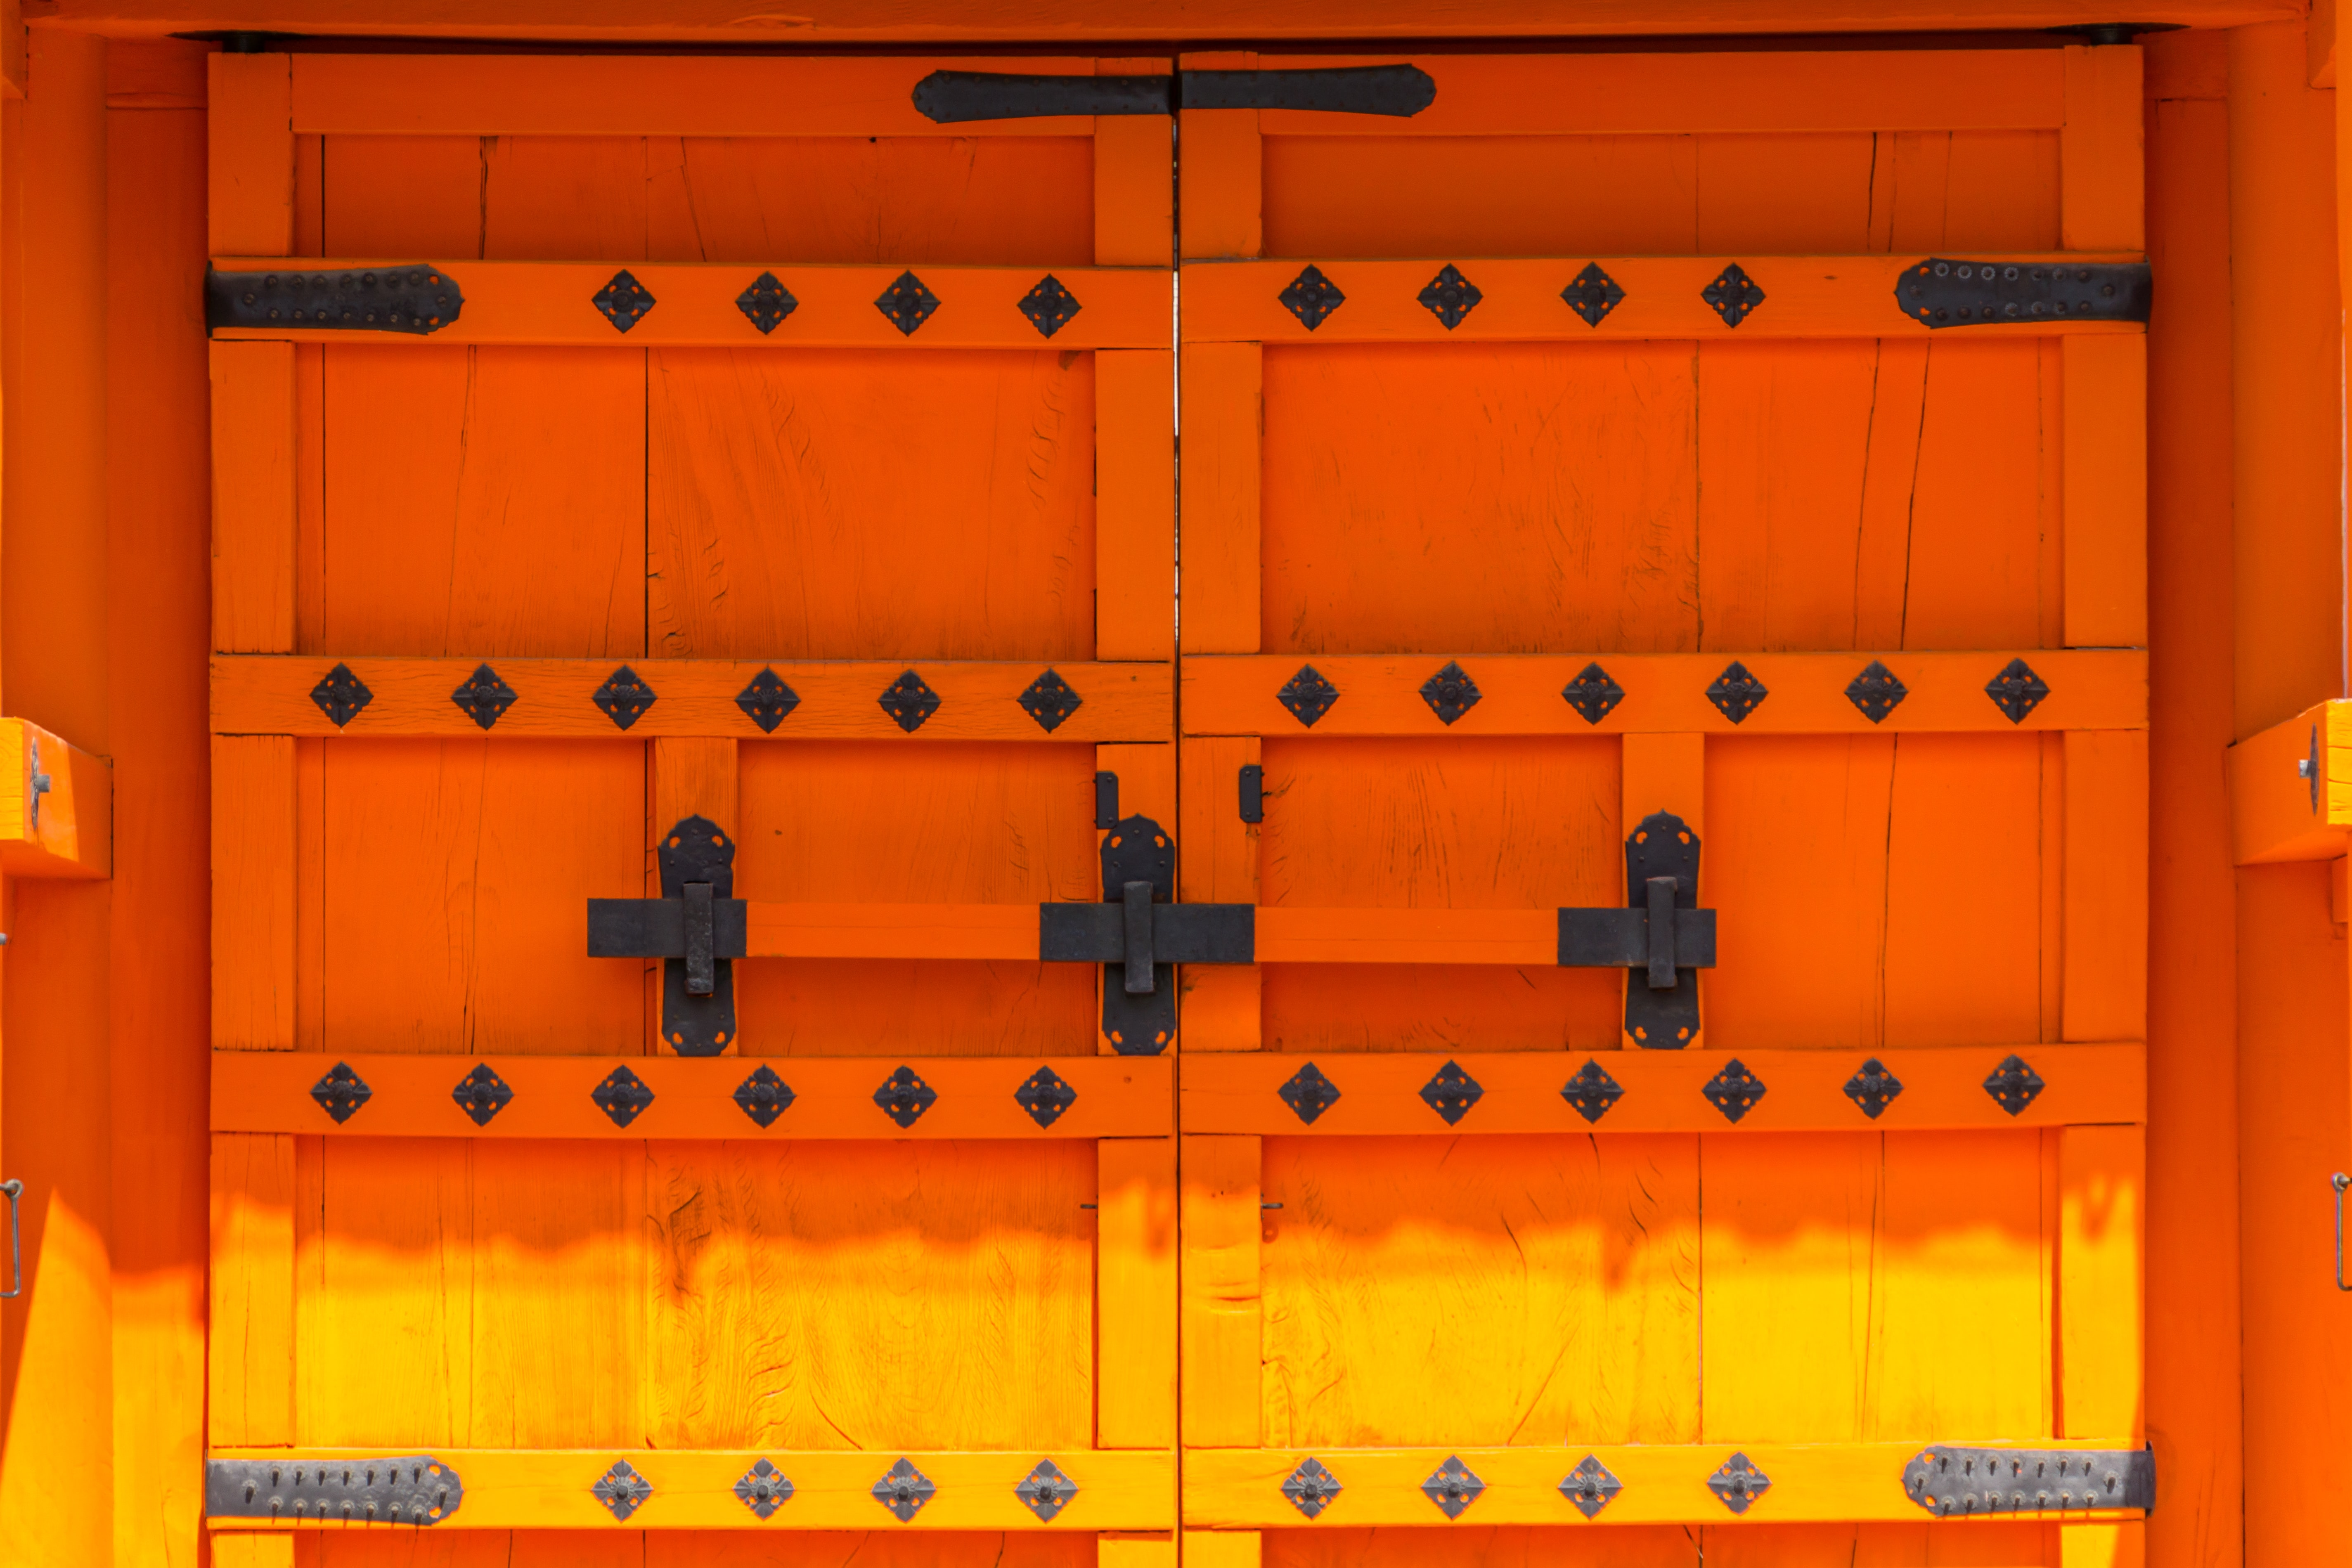 Ancient japanese wooden door entrance with designs and a wooden bar